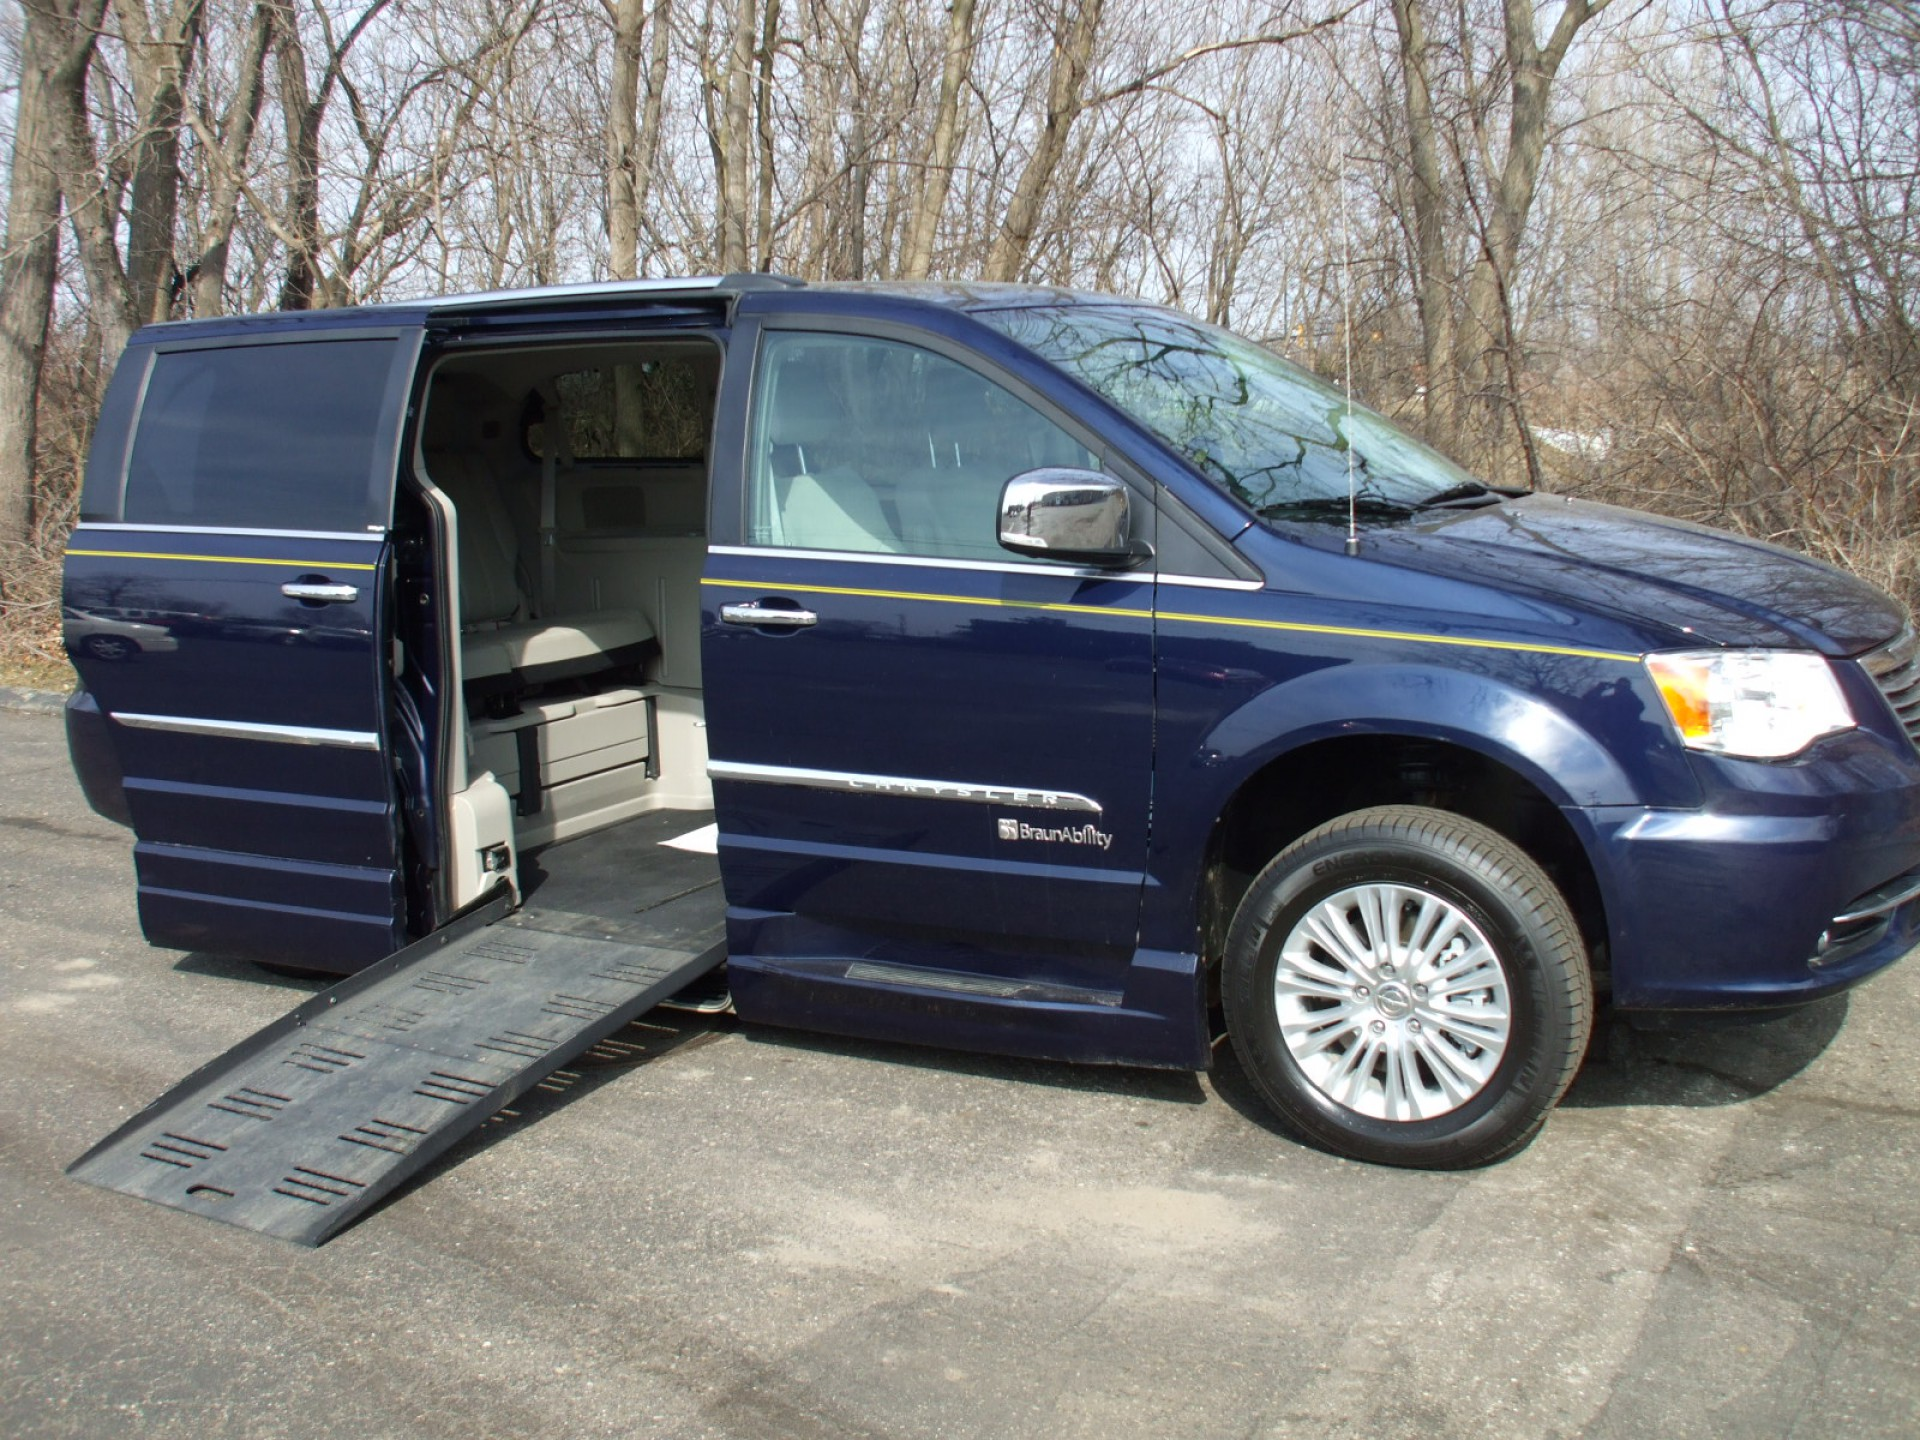 2013 chrysler town and country stock 732241 wheelchair van for sale gresham driving aids. Black Bedroom Furniture Sets. Home Design Ideas